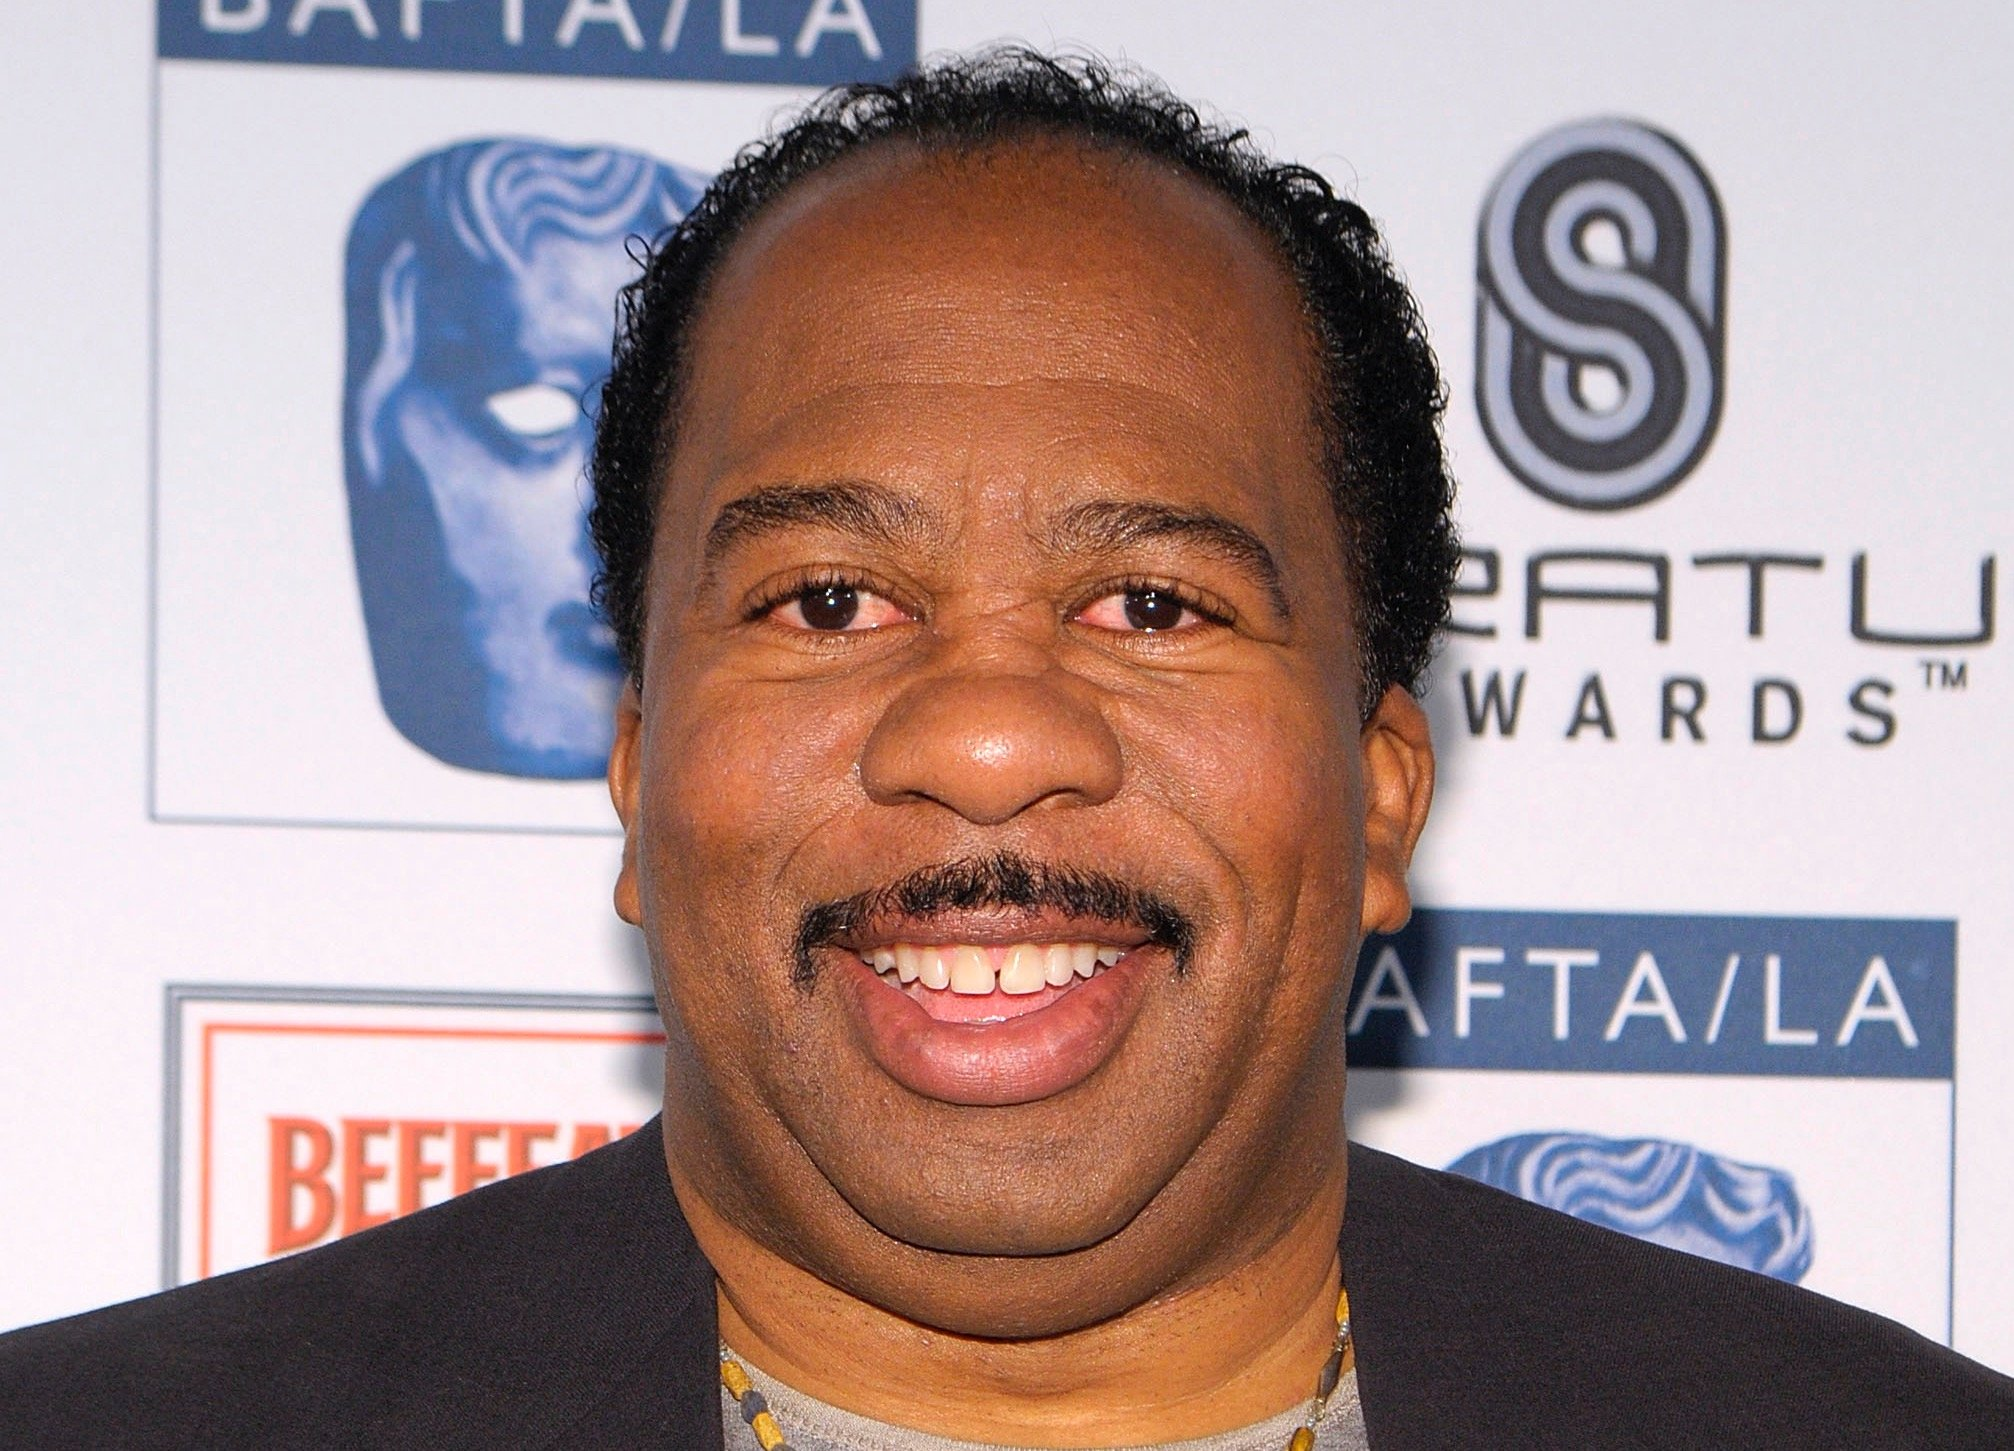 Stanley From The Office Shares The Racist DMs He's Been Getting Since Announcing His Spinoff - BroBible